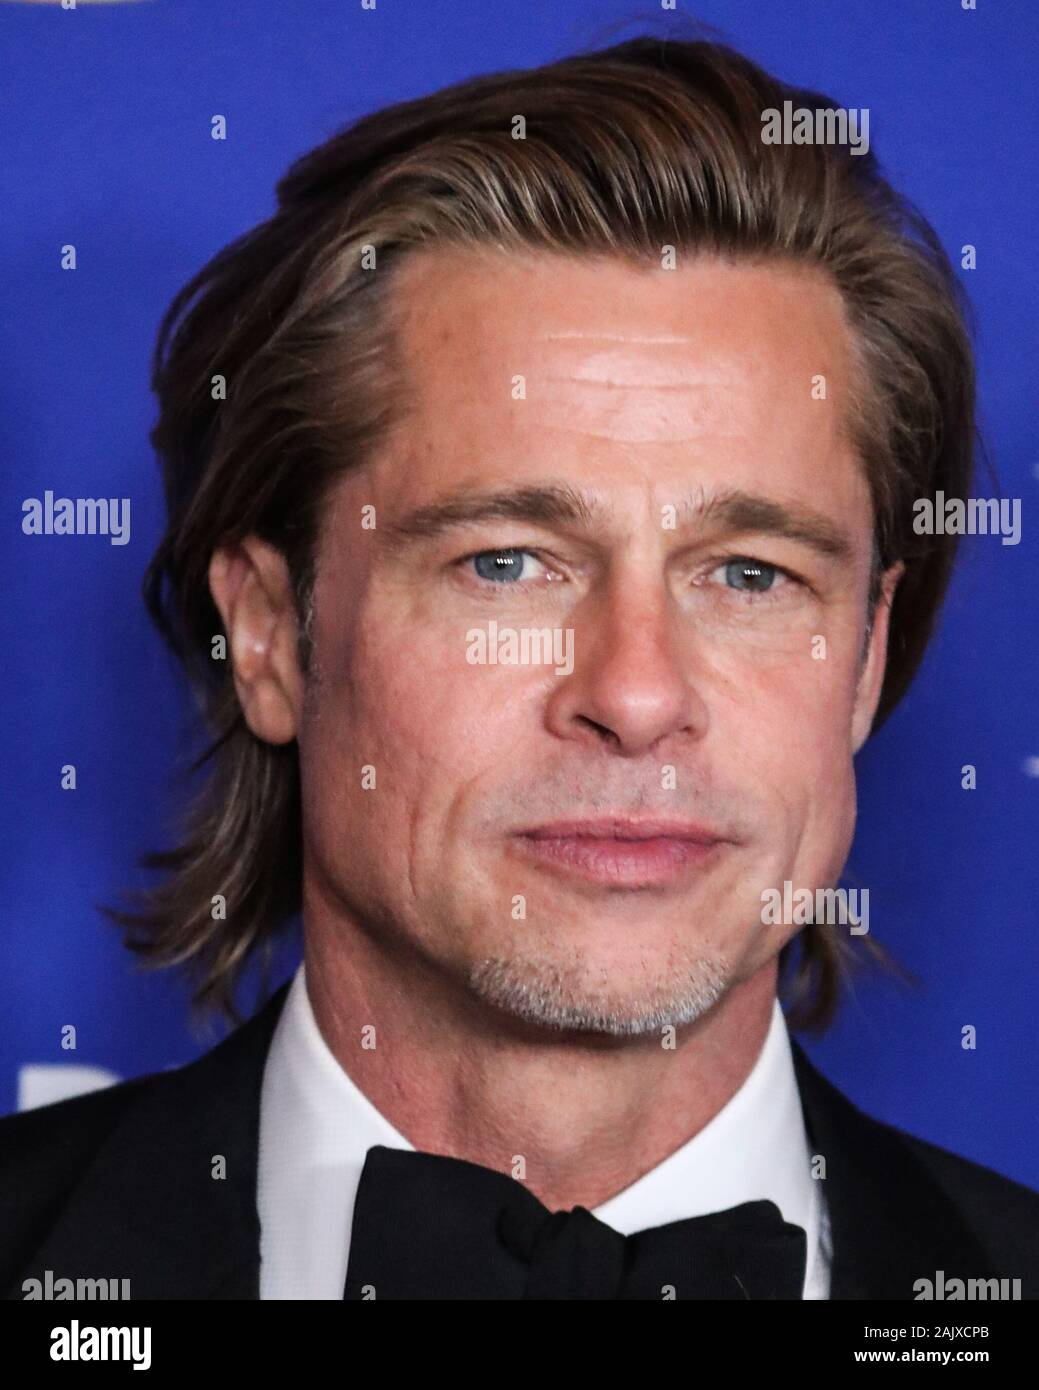 BEVERLY HILLS, LOS ANGELES, CALIFORNIA, USA - JANUARY 05: Actor Brad Pitt wearing a Brioni tux poses in the press room at the 77th Annual Golden Globe Awards held at The Beverly Hilton Hotel on January 5, 2020 in Beverly Hills, Los Angeles, California, United States. (Photo by Xavier Collin/Image Press Agency) Stock Photo